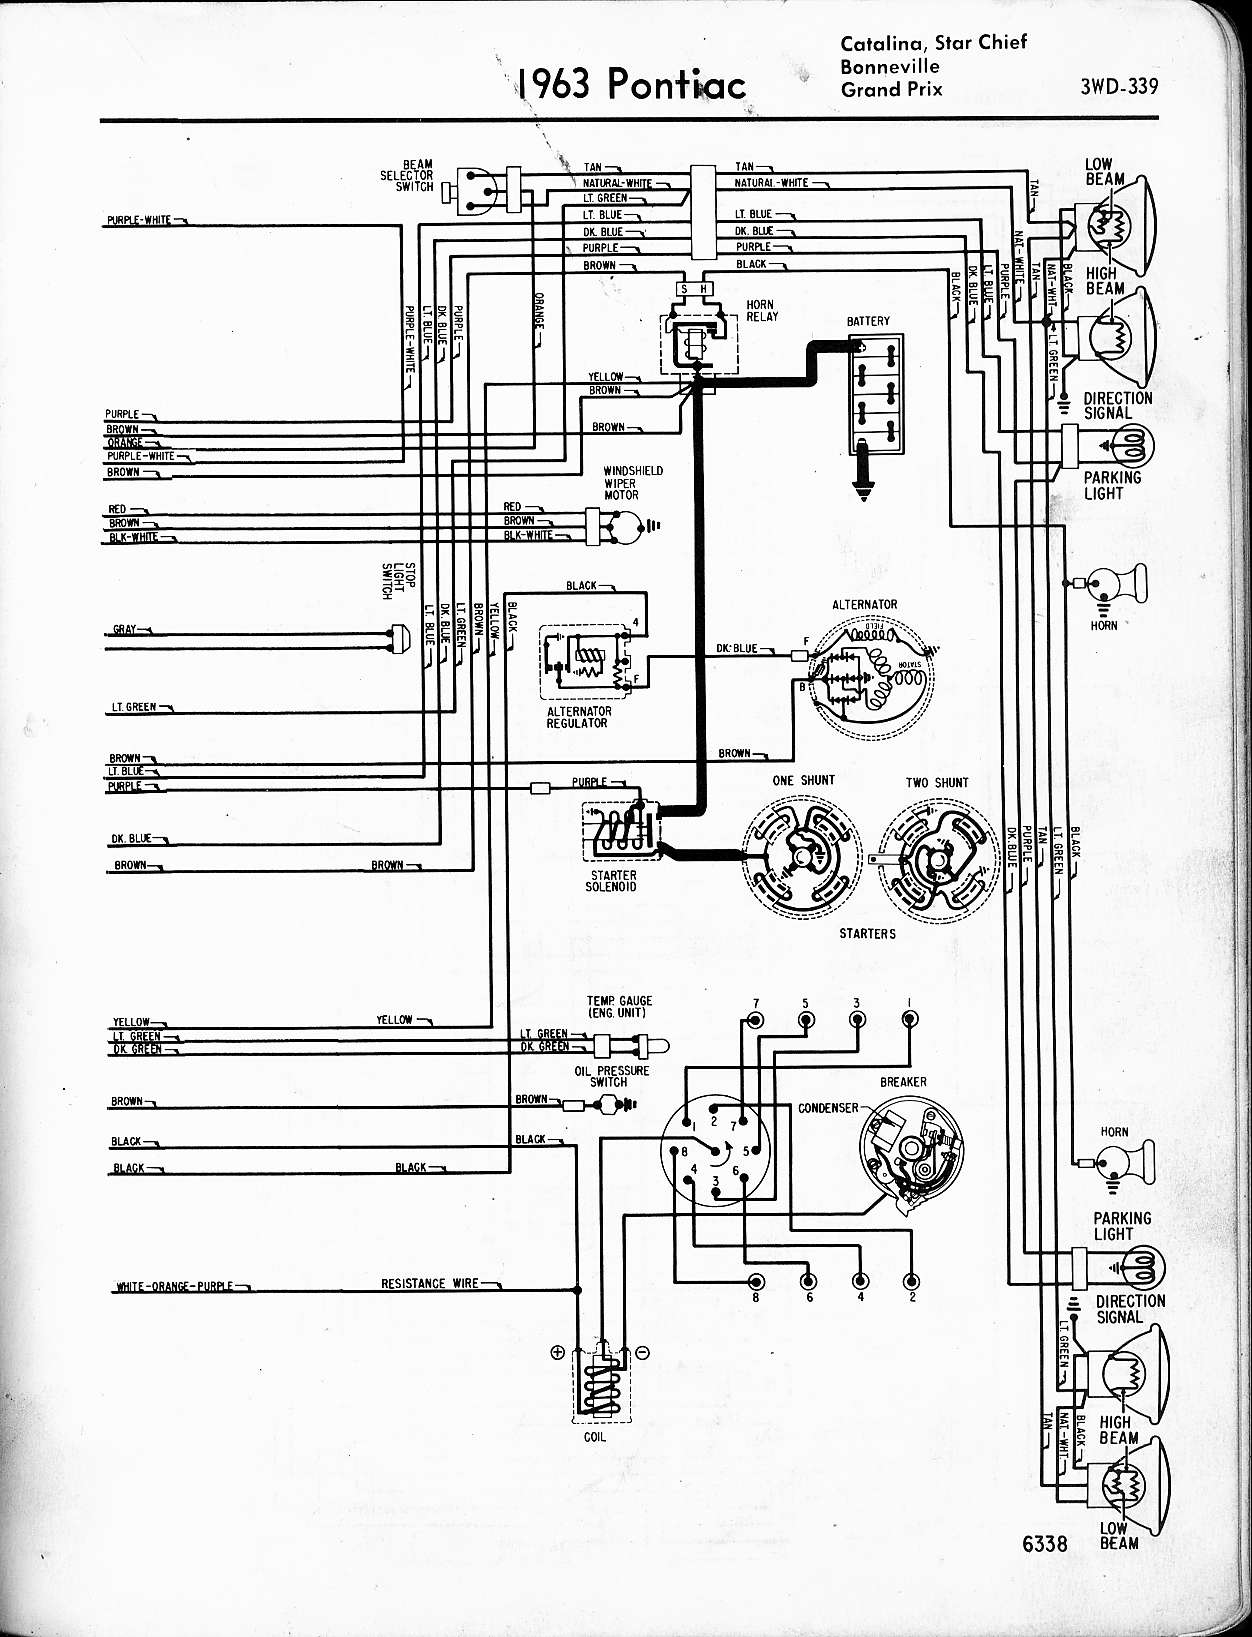 1964 pontiac grand prix vacuum diagram